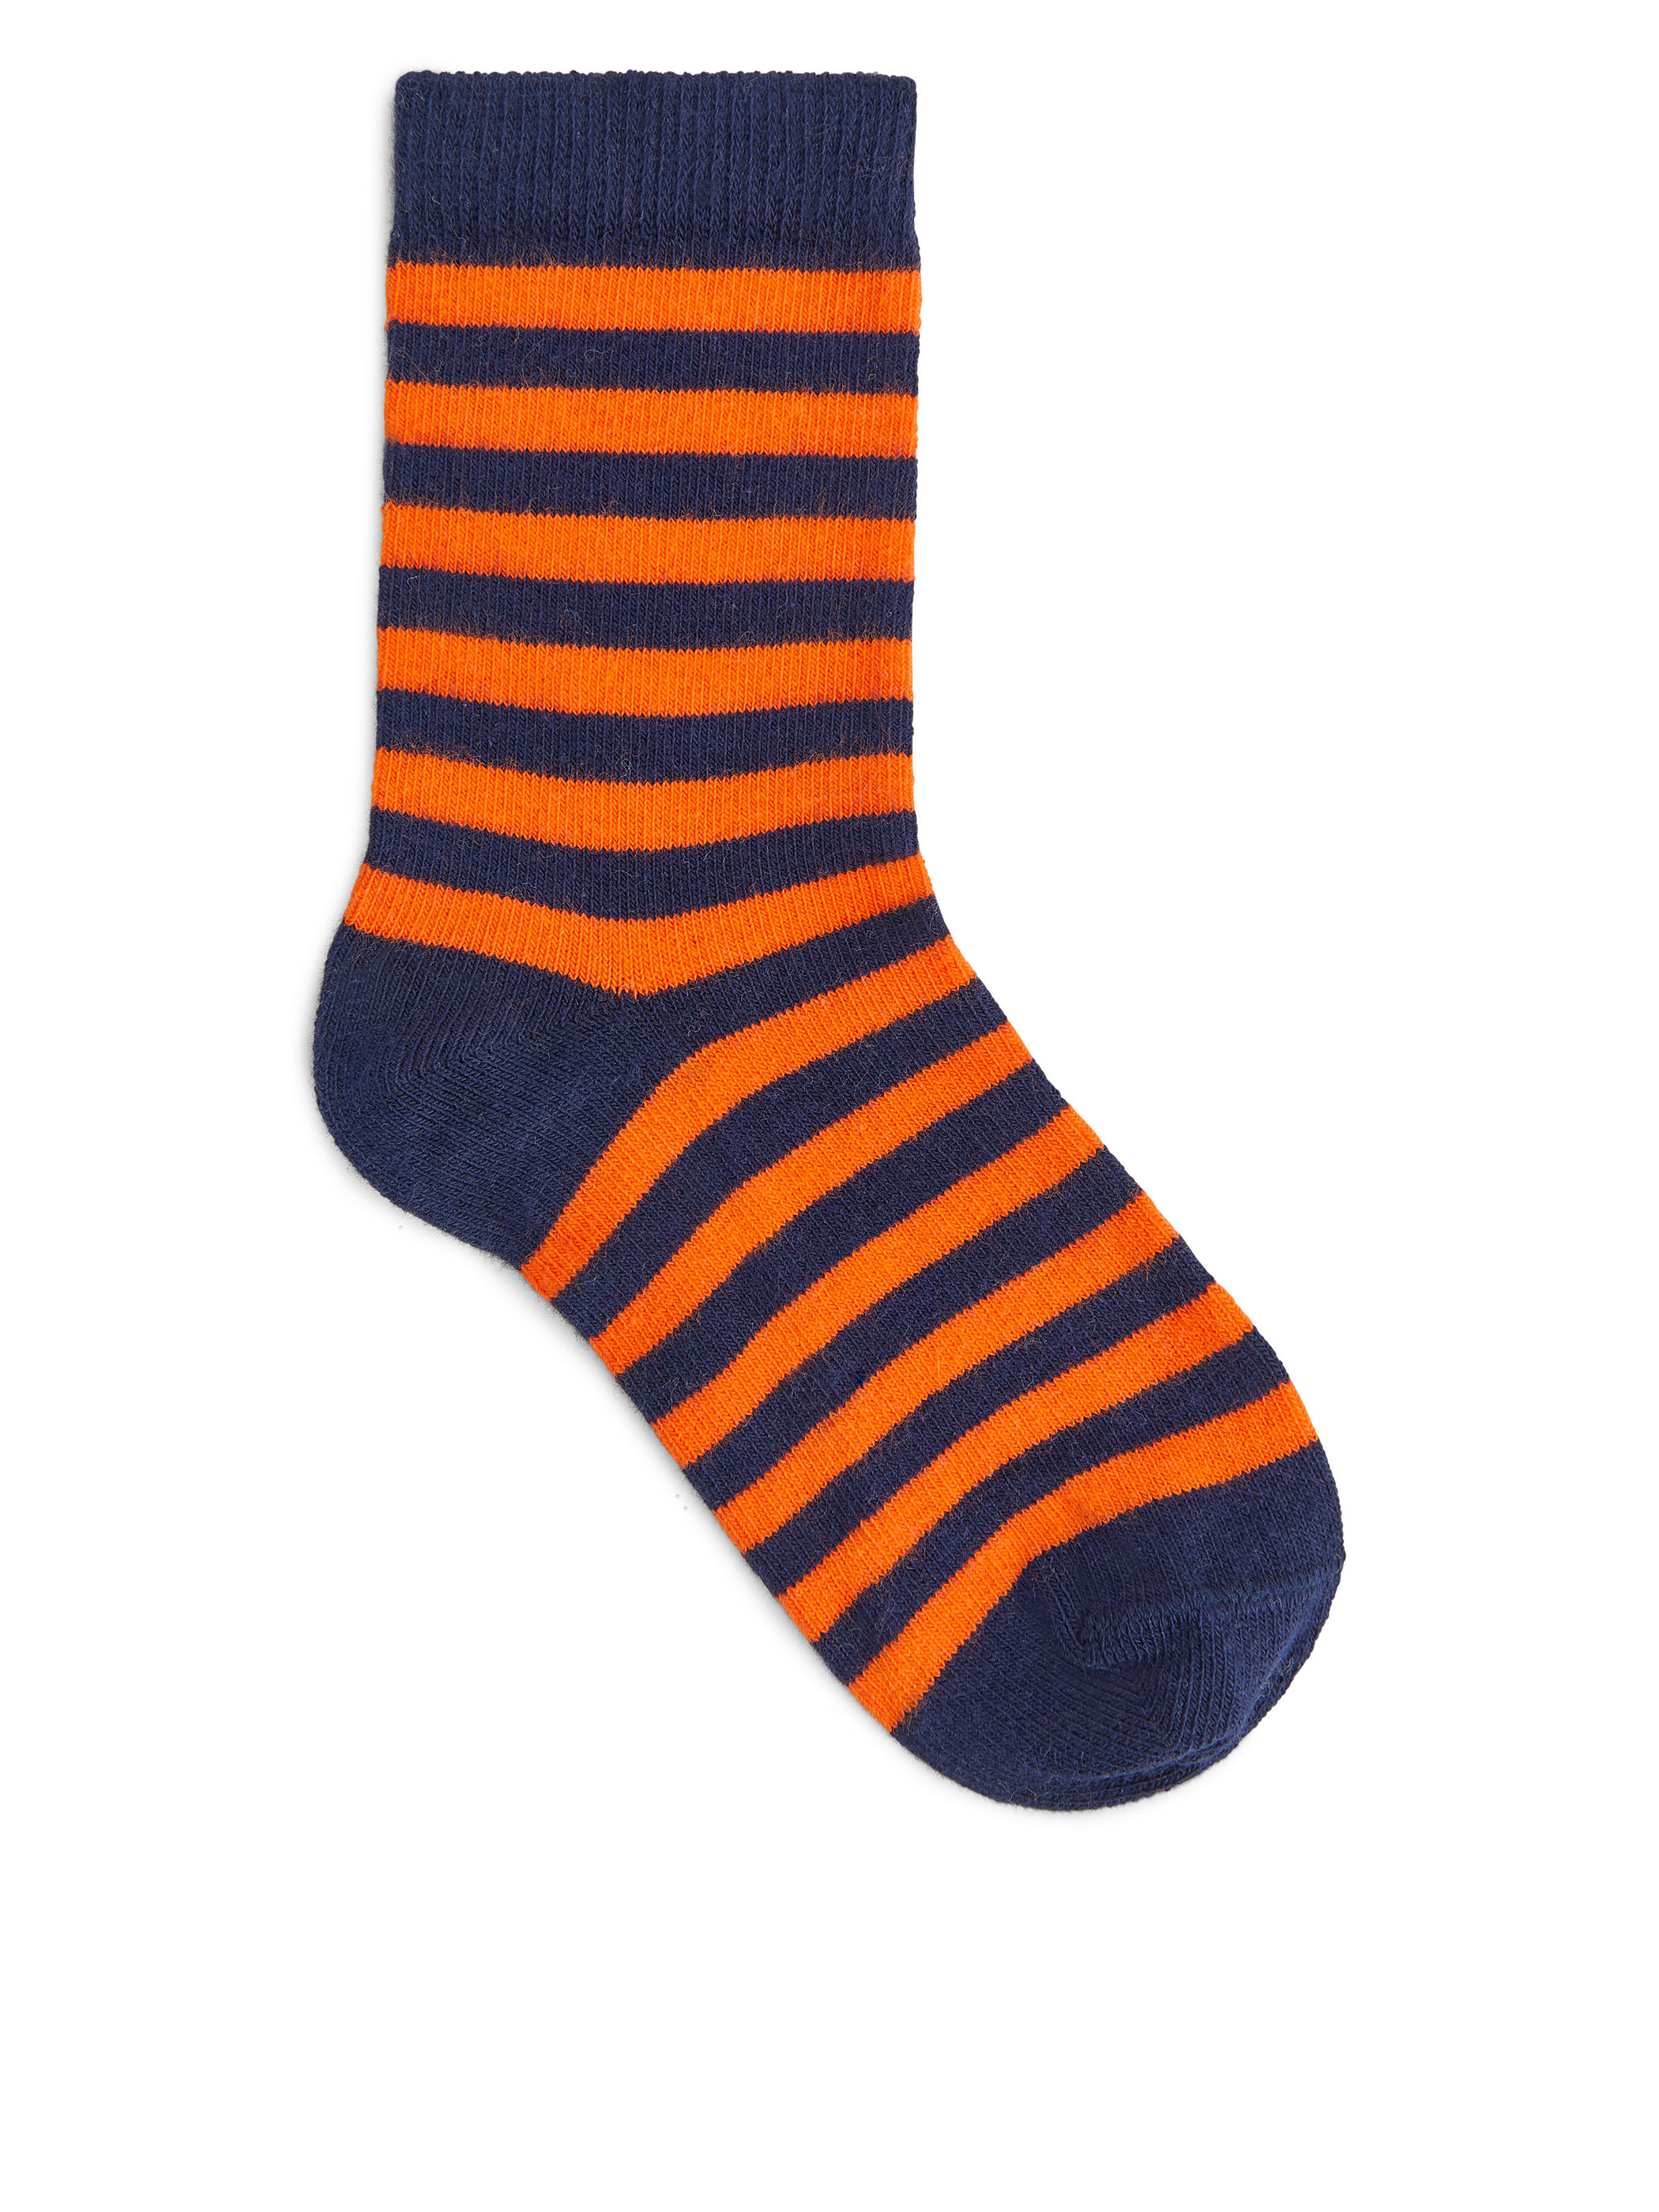 Fabric Swatch image of Arket striped socks, 2-pack in blue